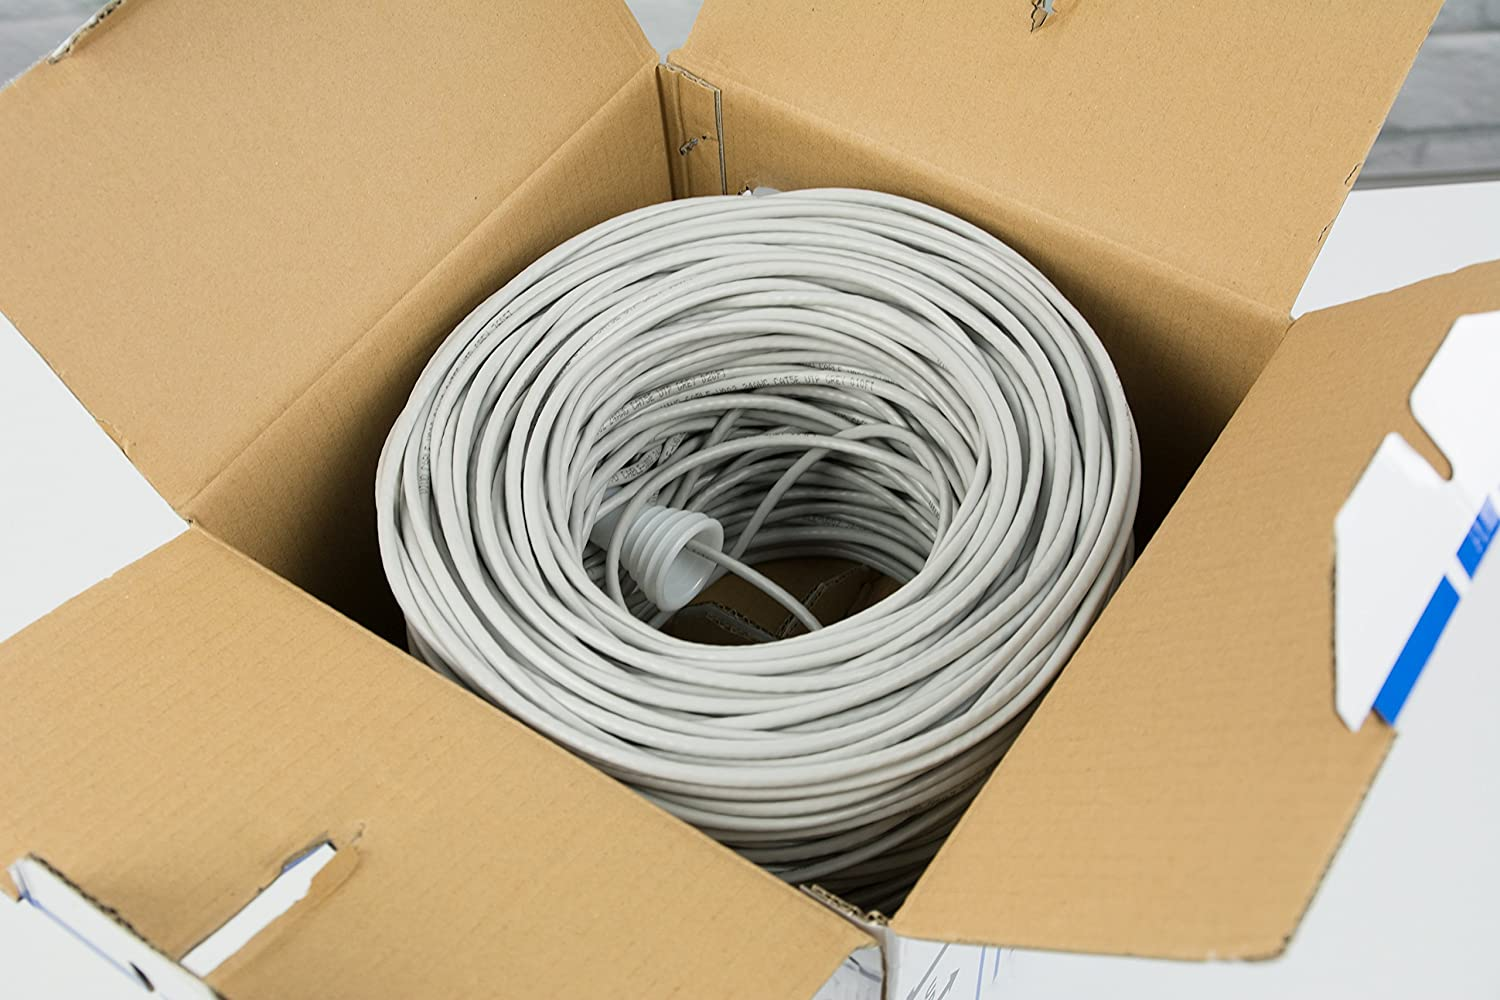 New 500 Ft Bulk Cat5e Ethernet Cable Wire Utp Pull Box Wiring Money Dangers 500ft Cat 5e Grey Vivo V002 Computers Accessories